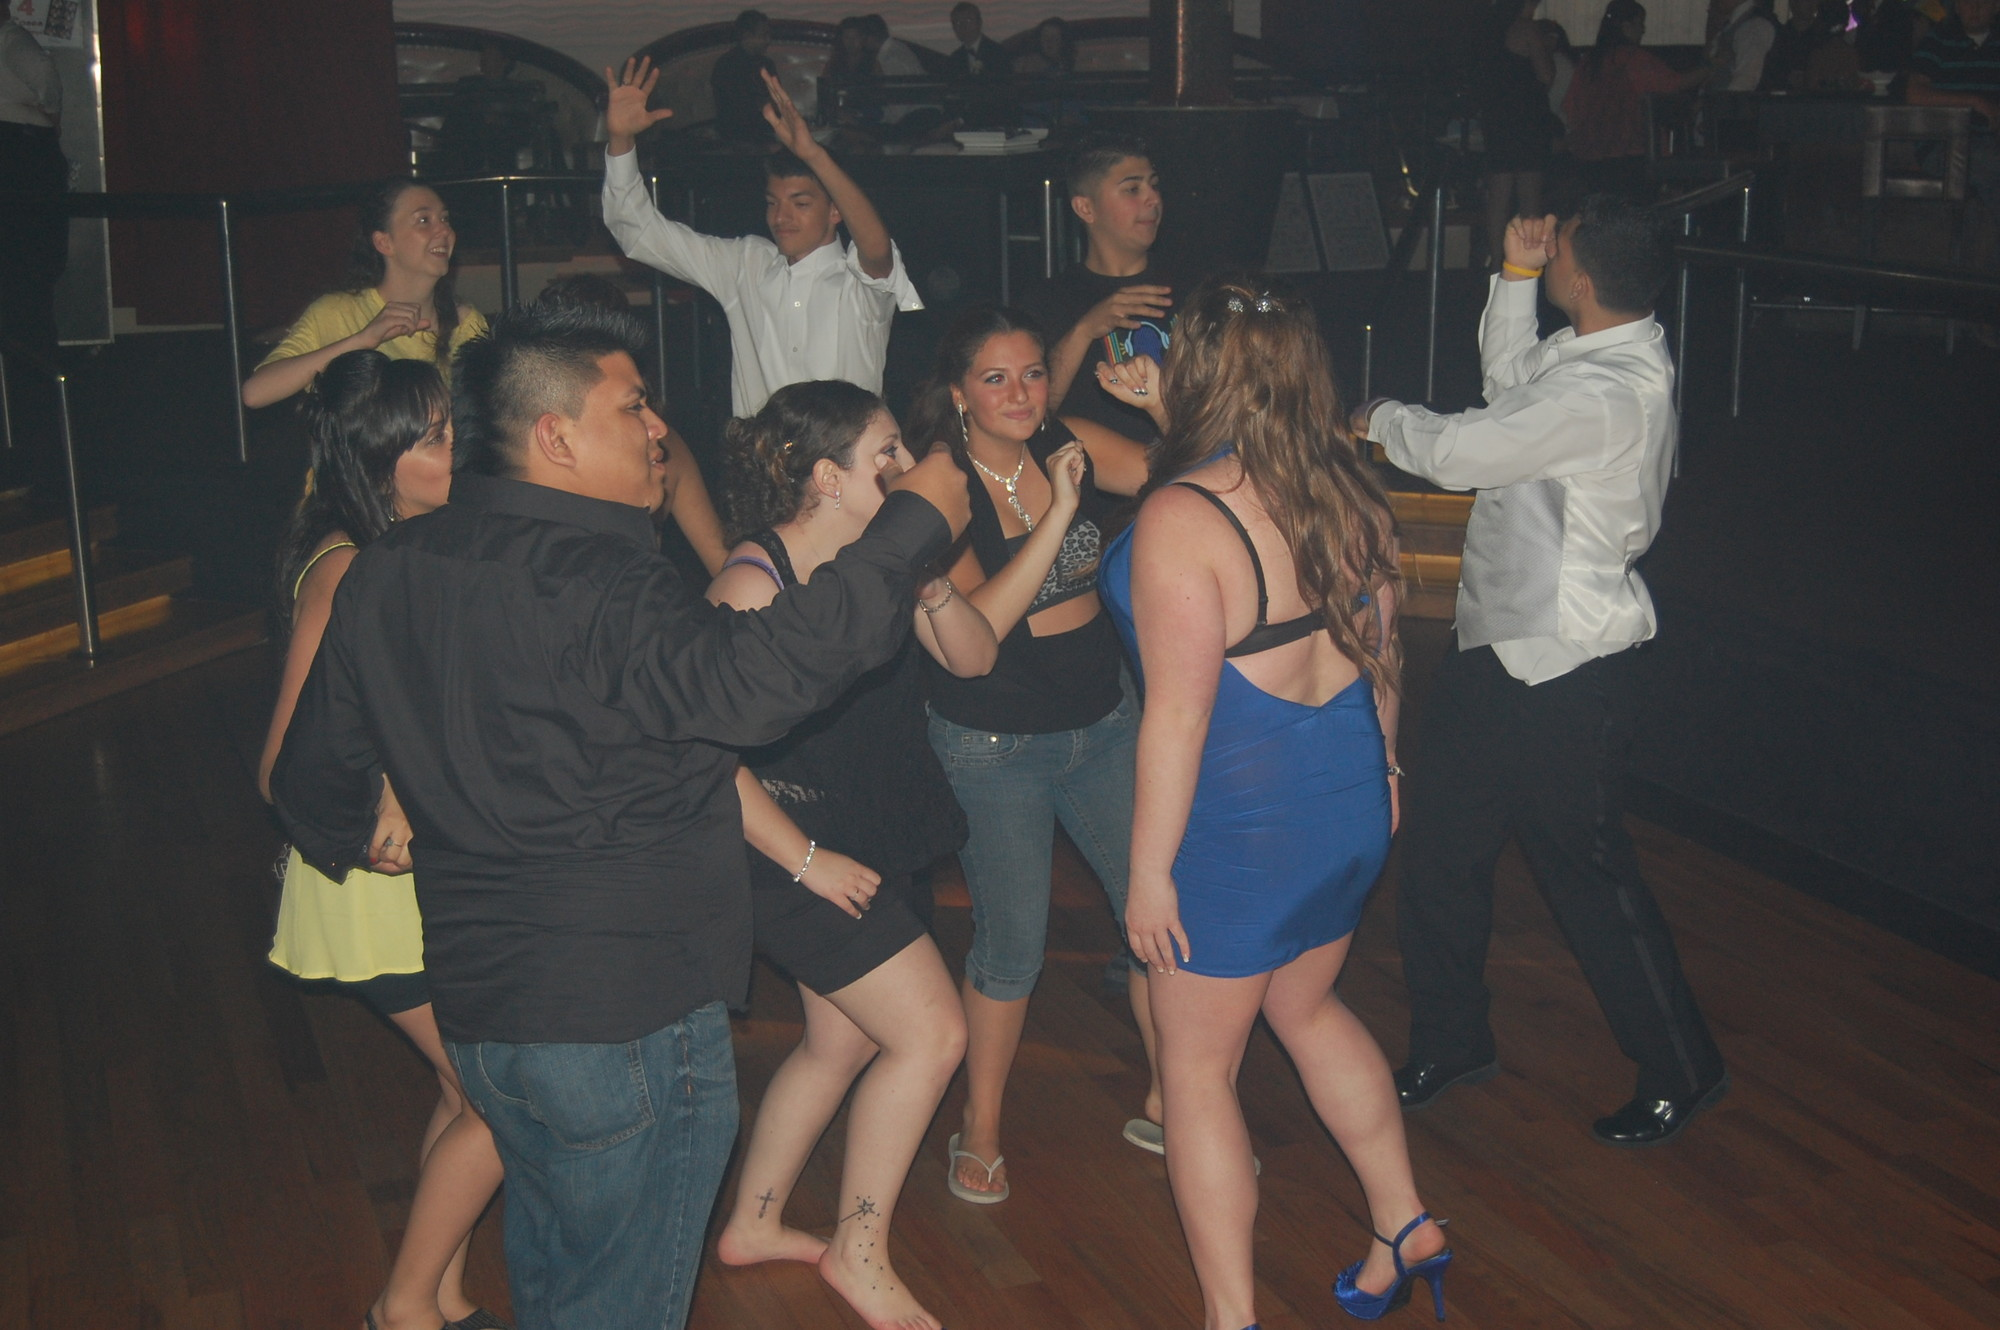 Seniors could continue dancing after prom at Zachary's Nightclub in East Meadow, the site of this year's Midnight Madness, sponsored by attended the Bellmore-Merrick Community Wellness Council.